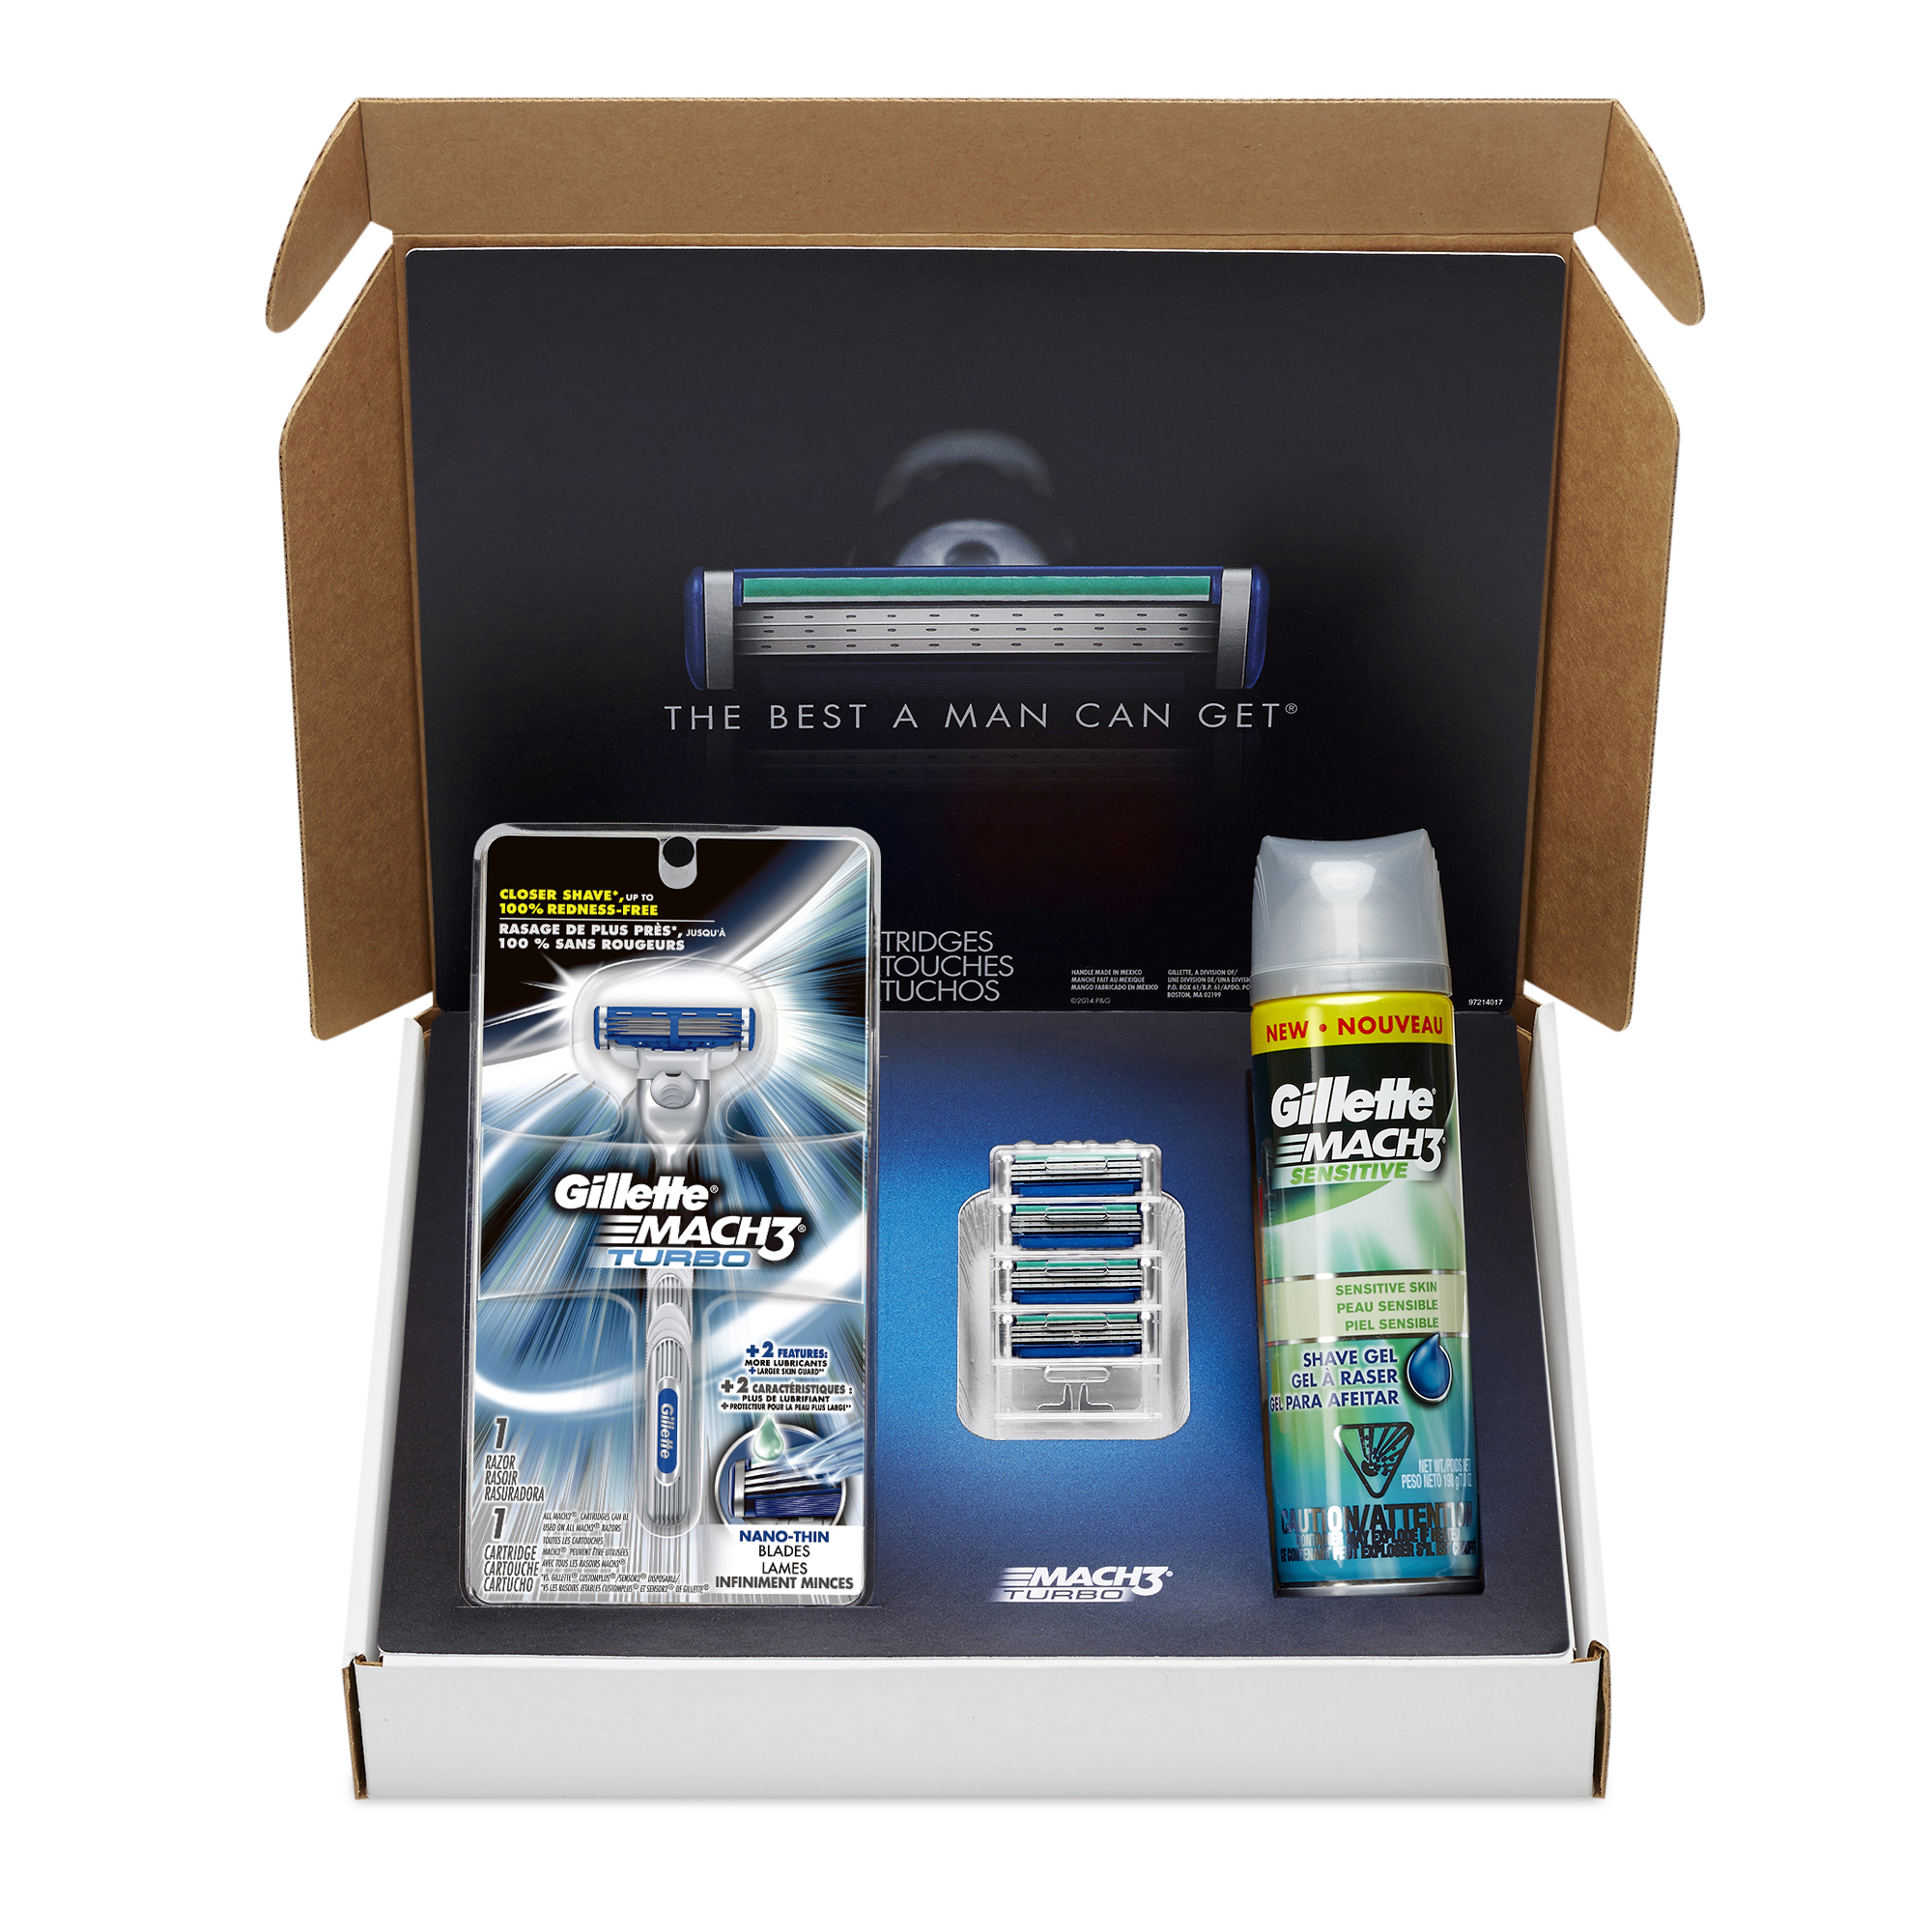 Gillette MACH3 Turbo Bundle With 5 Razor Blade Refills + 1 MACH3 Turbo Handle + MACH3 Sensitive Shave Gel 7oz, 1 kit